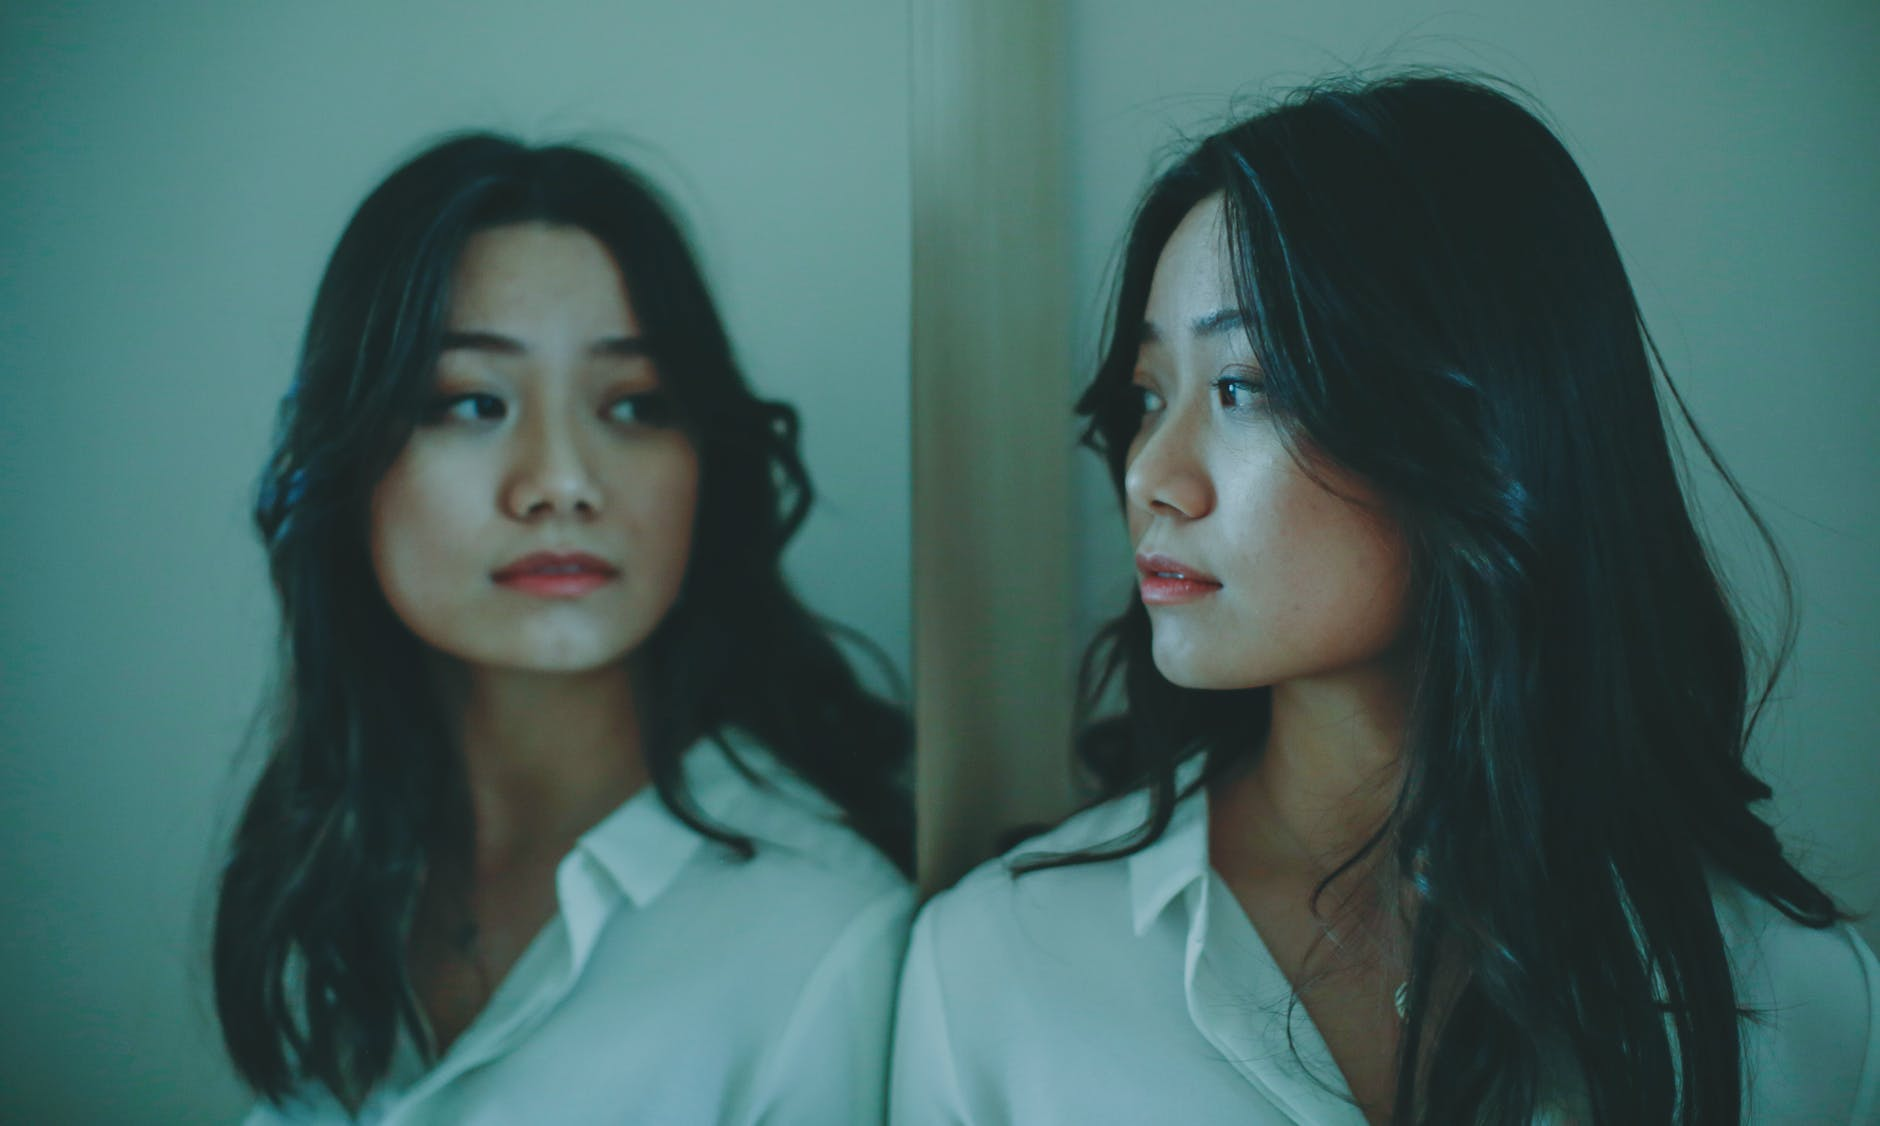 A young Asian woman in a white shirt looking at herself sideways in a mirror